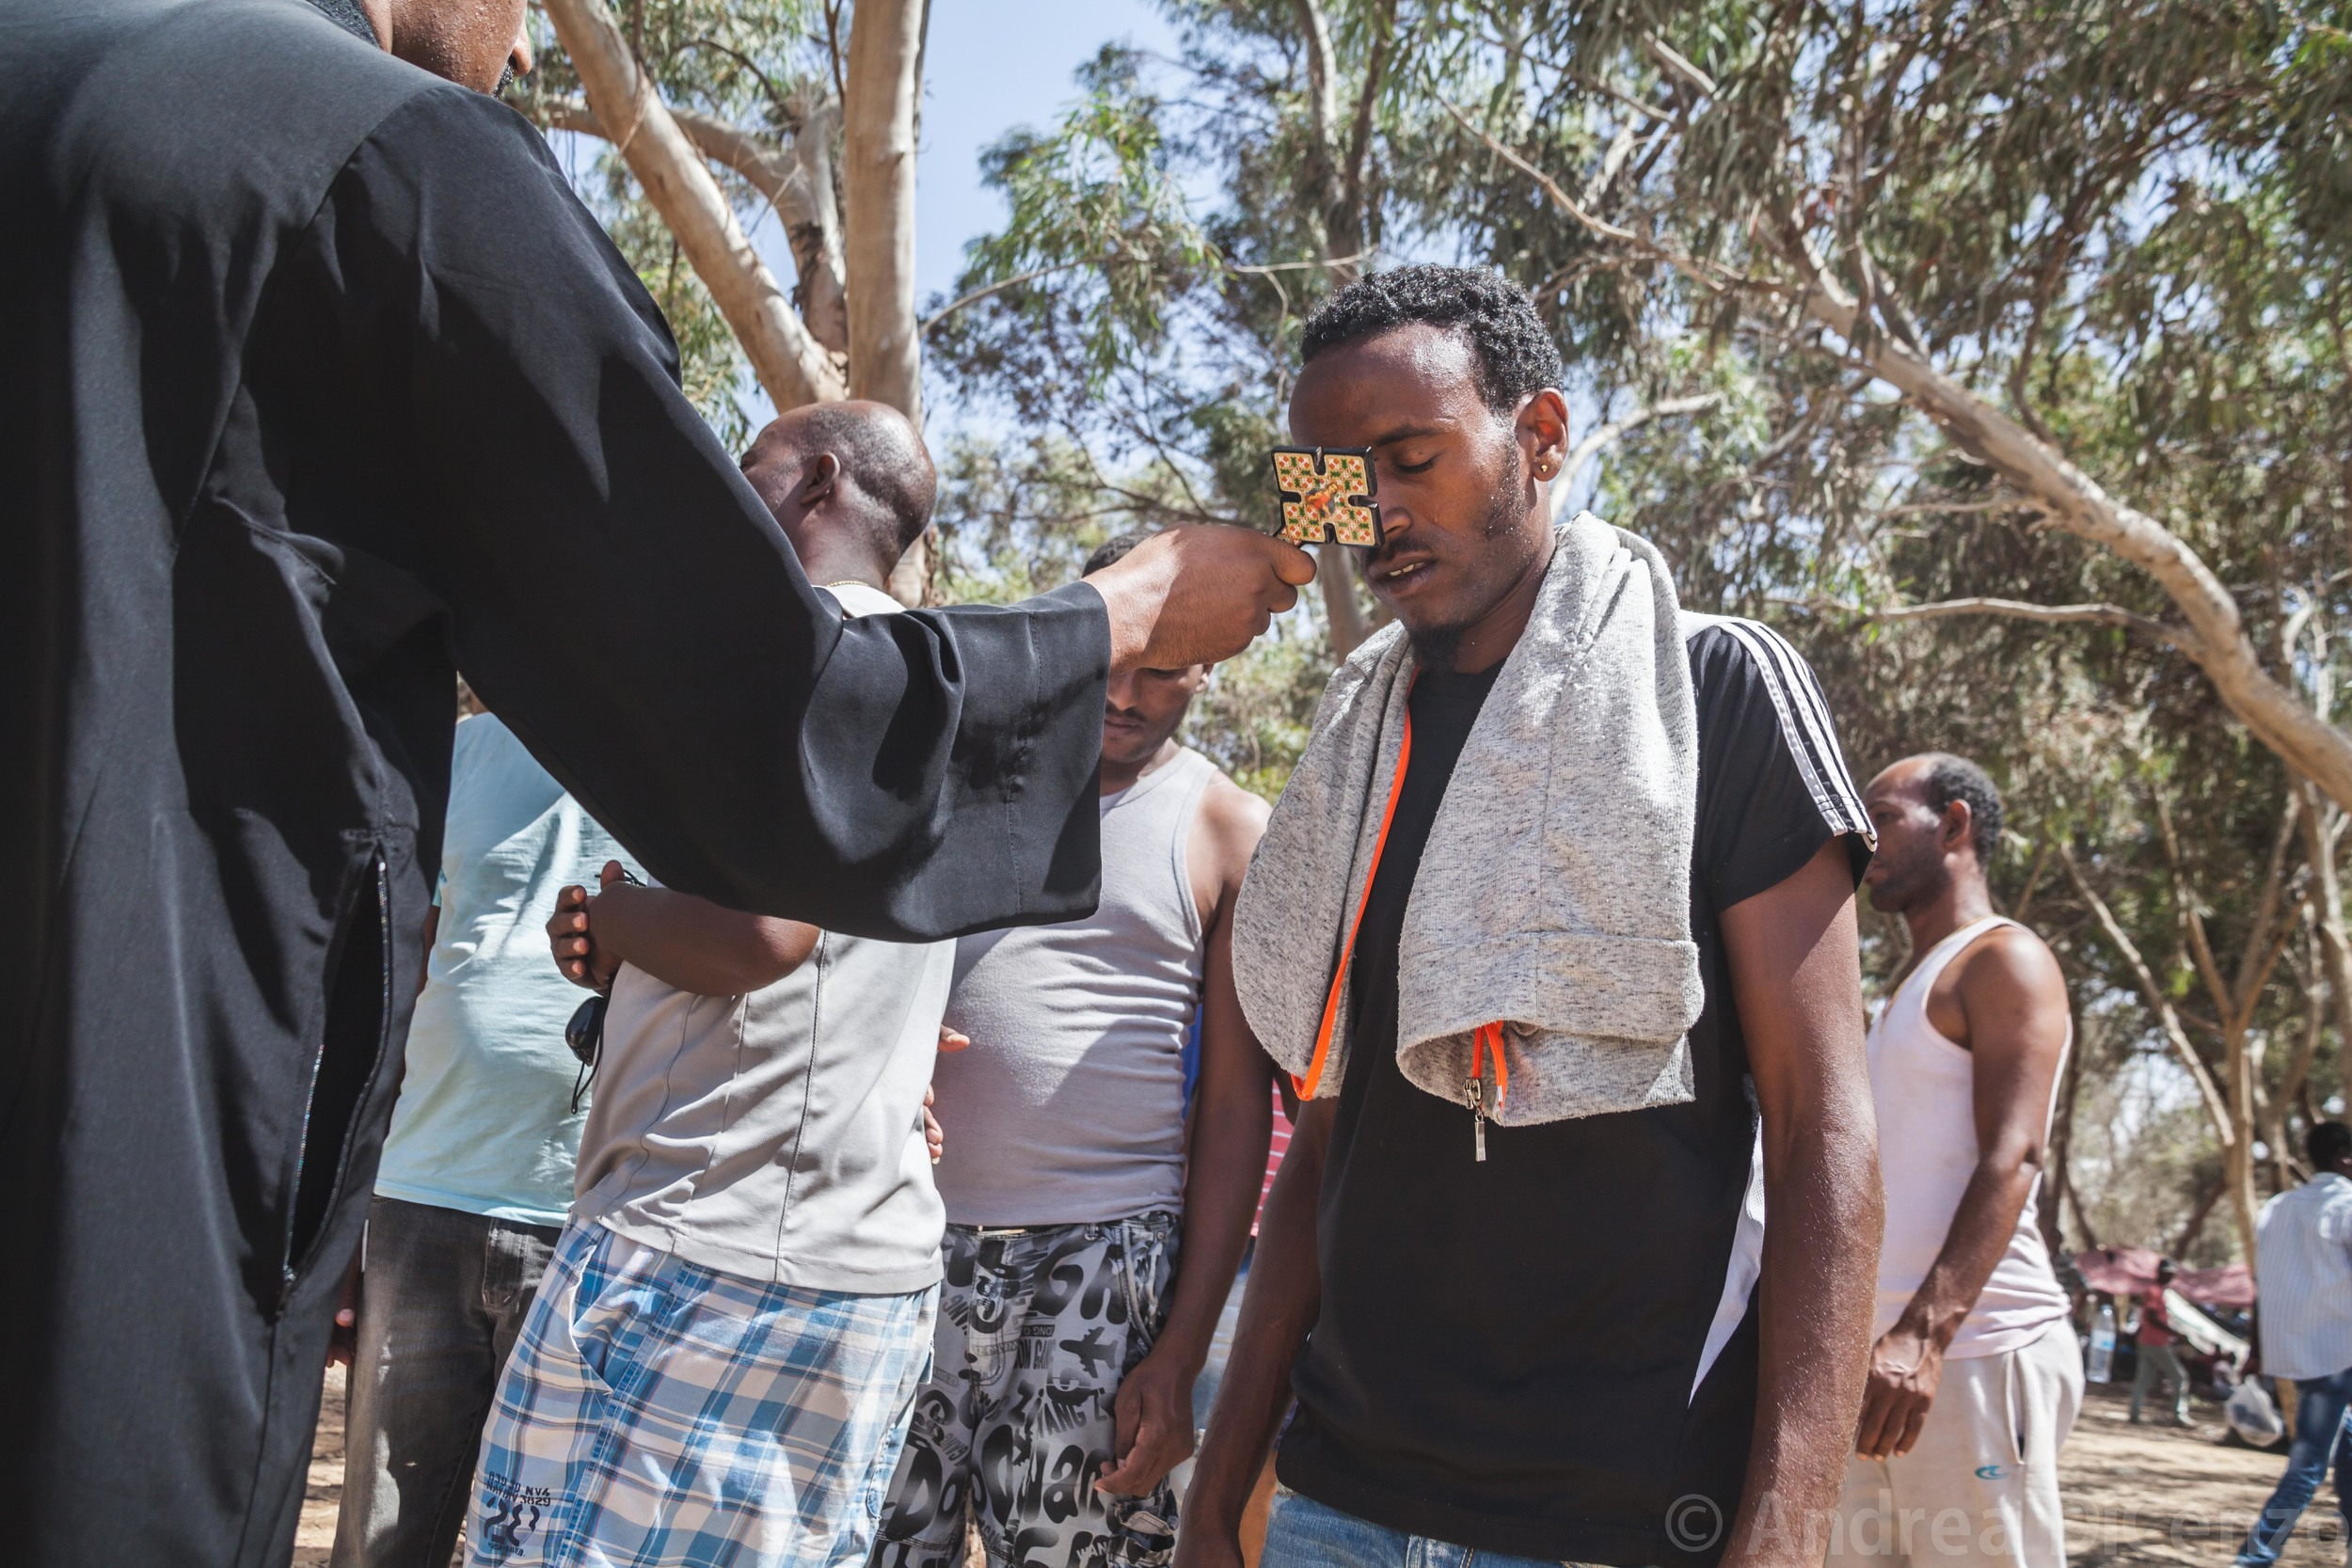 An Eritrean christian receives a blessing from a leader of the Christian community. The gentlemen is part of a protest from asylum seekers in Holot Detention Center who have left the establishment to protest living conditions for them in Israel.